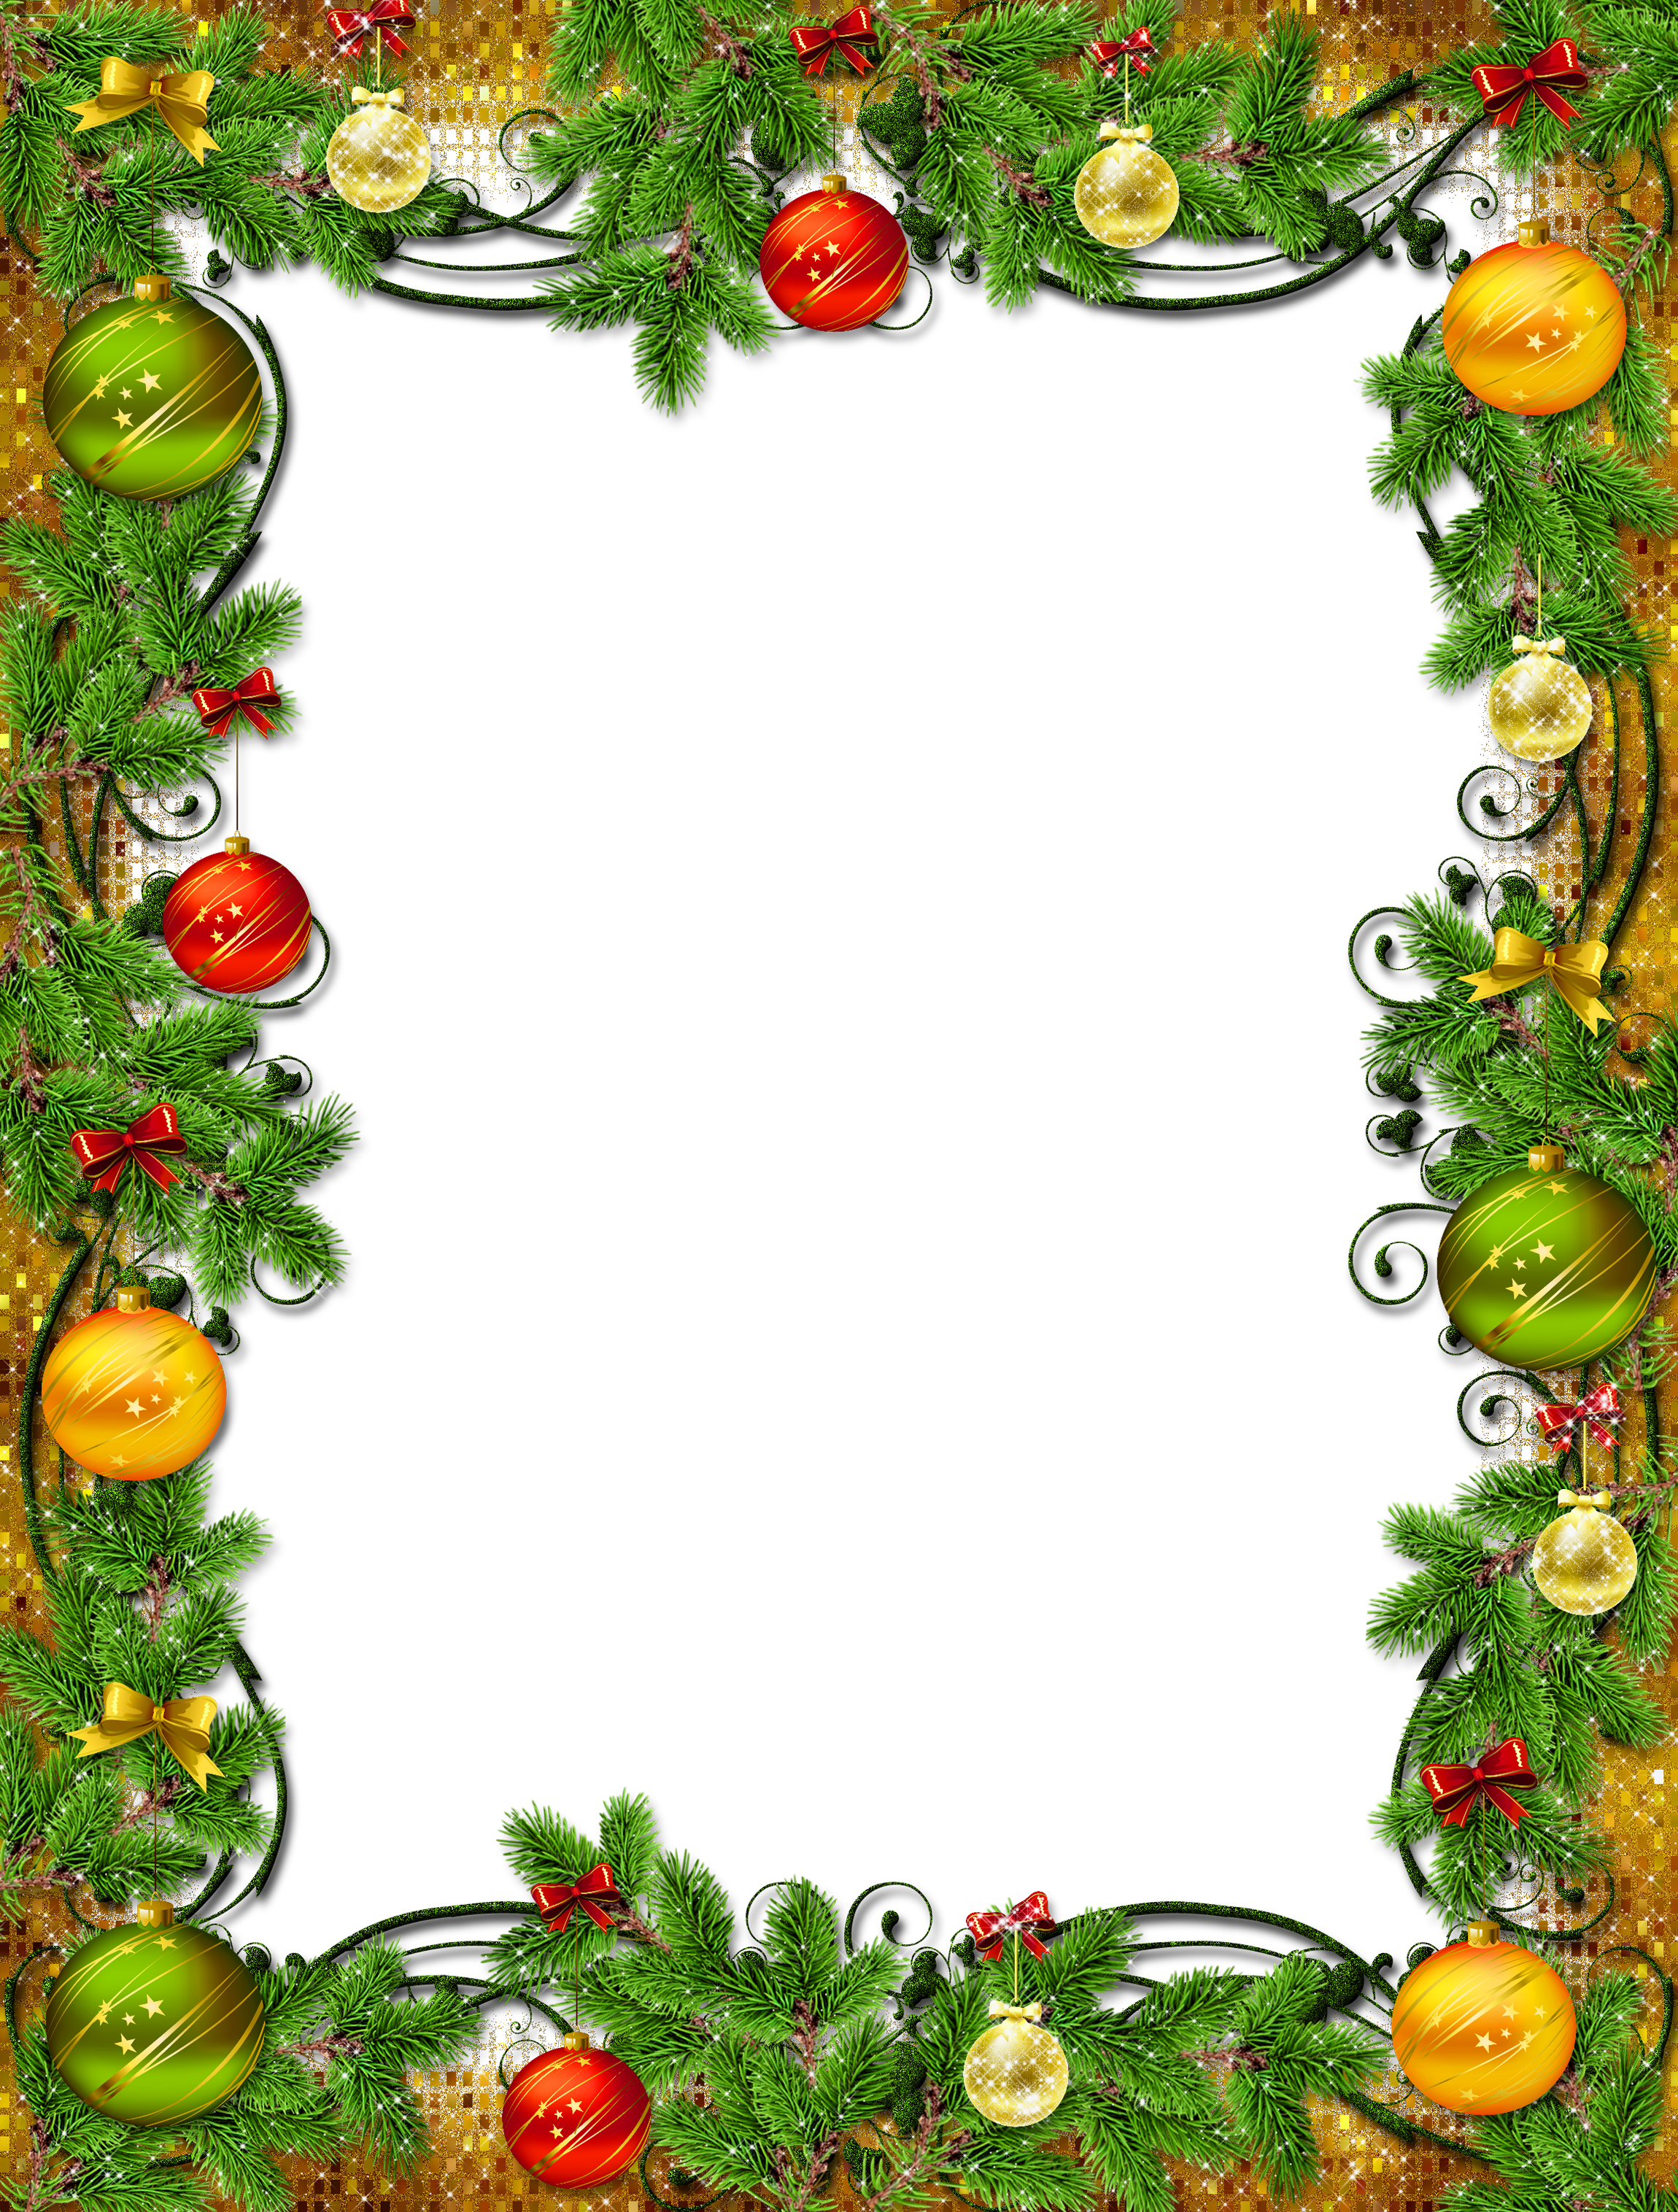 Beautiful png photo frame. Christmas borders .png clipart black and white stock